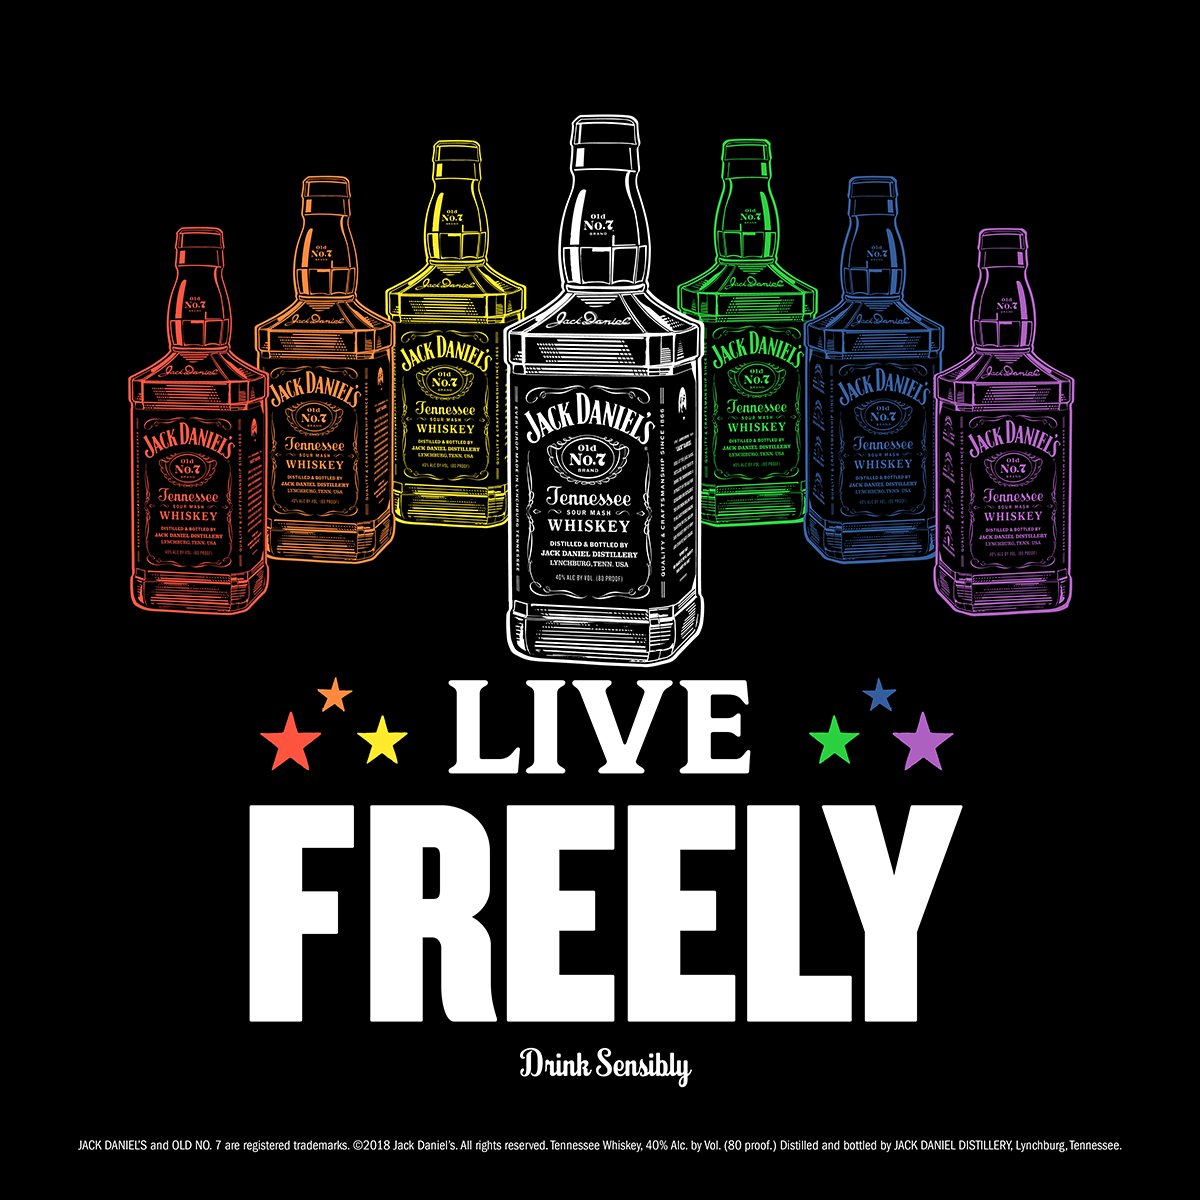 """JACK DANIELS - """"Brown-Forman, the company that distributes Jack Daniels, Jack Honey, & Jack Fire is proud to have the """"Live Freely"""" campaign supporting the LGBTQ community. The company also received a perfect score of 100% on the 2018 Corporate Equality Index."""" READ MORE🌈 DRINK AT TROUPE429 ✅"""